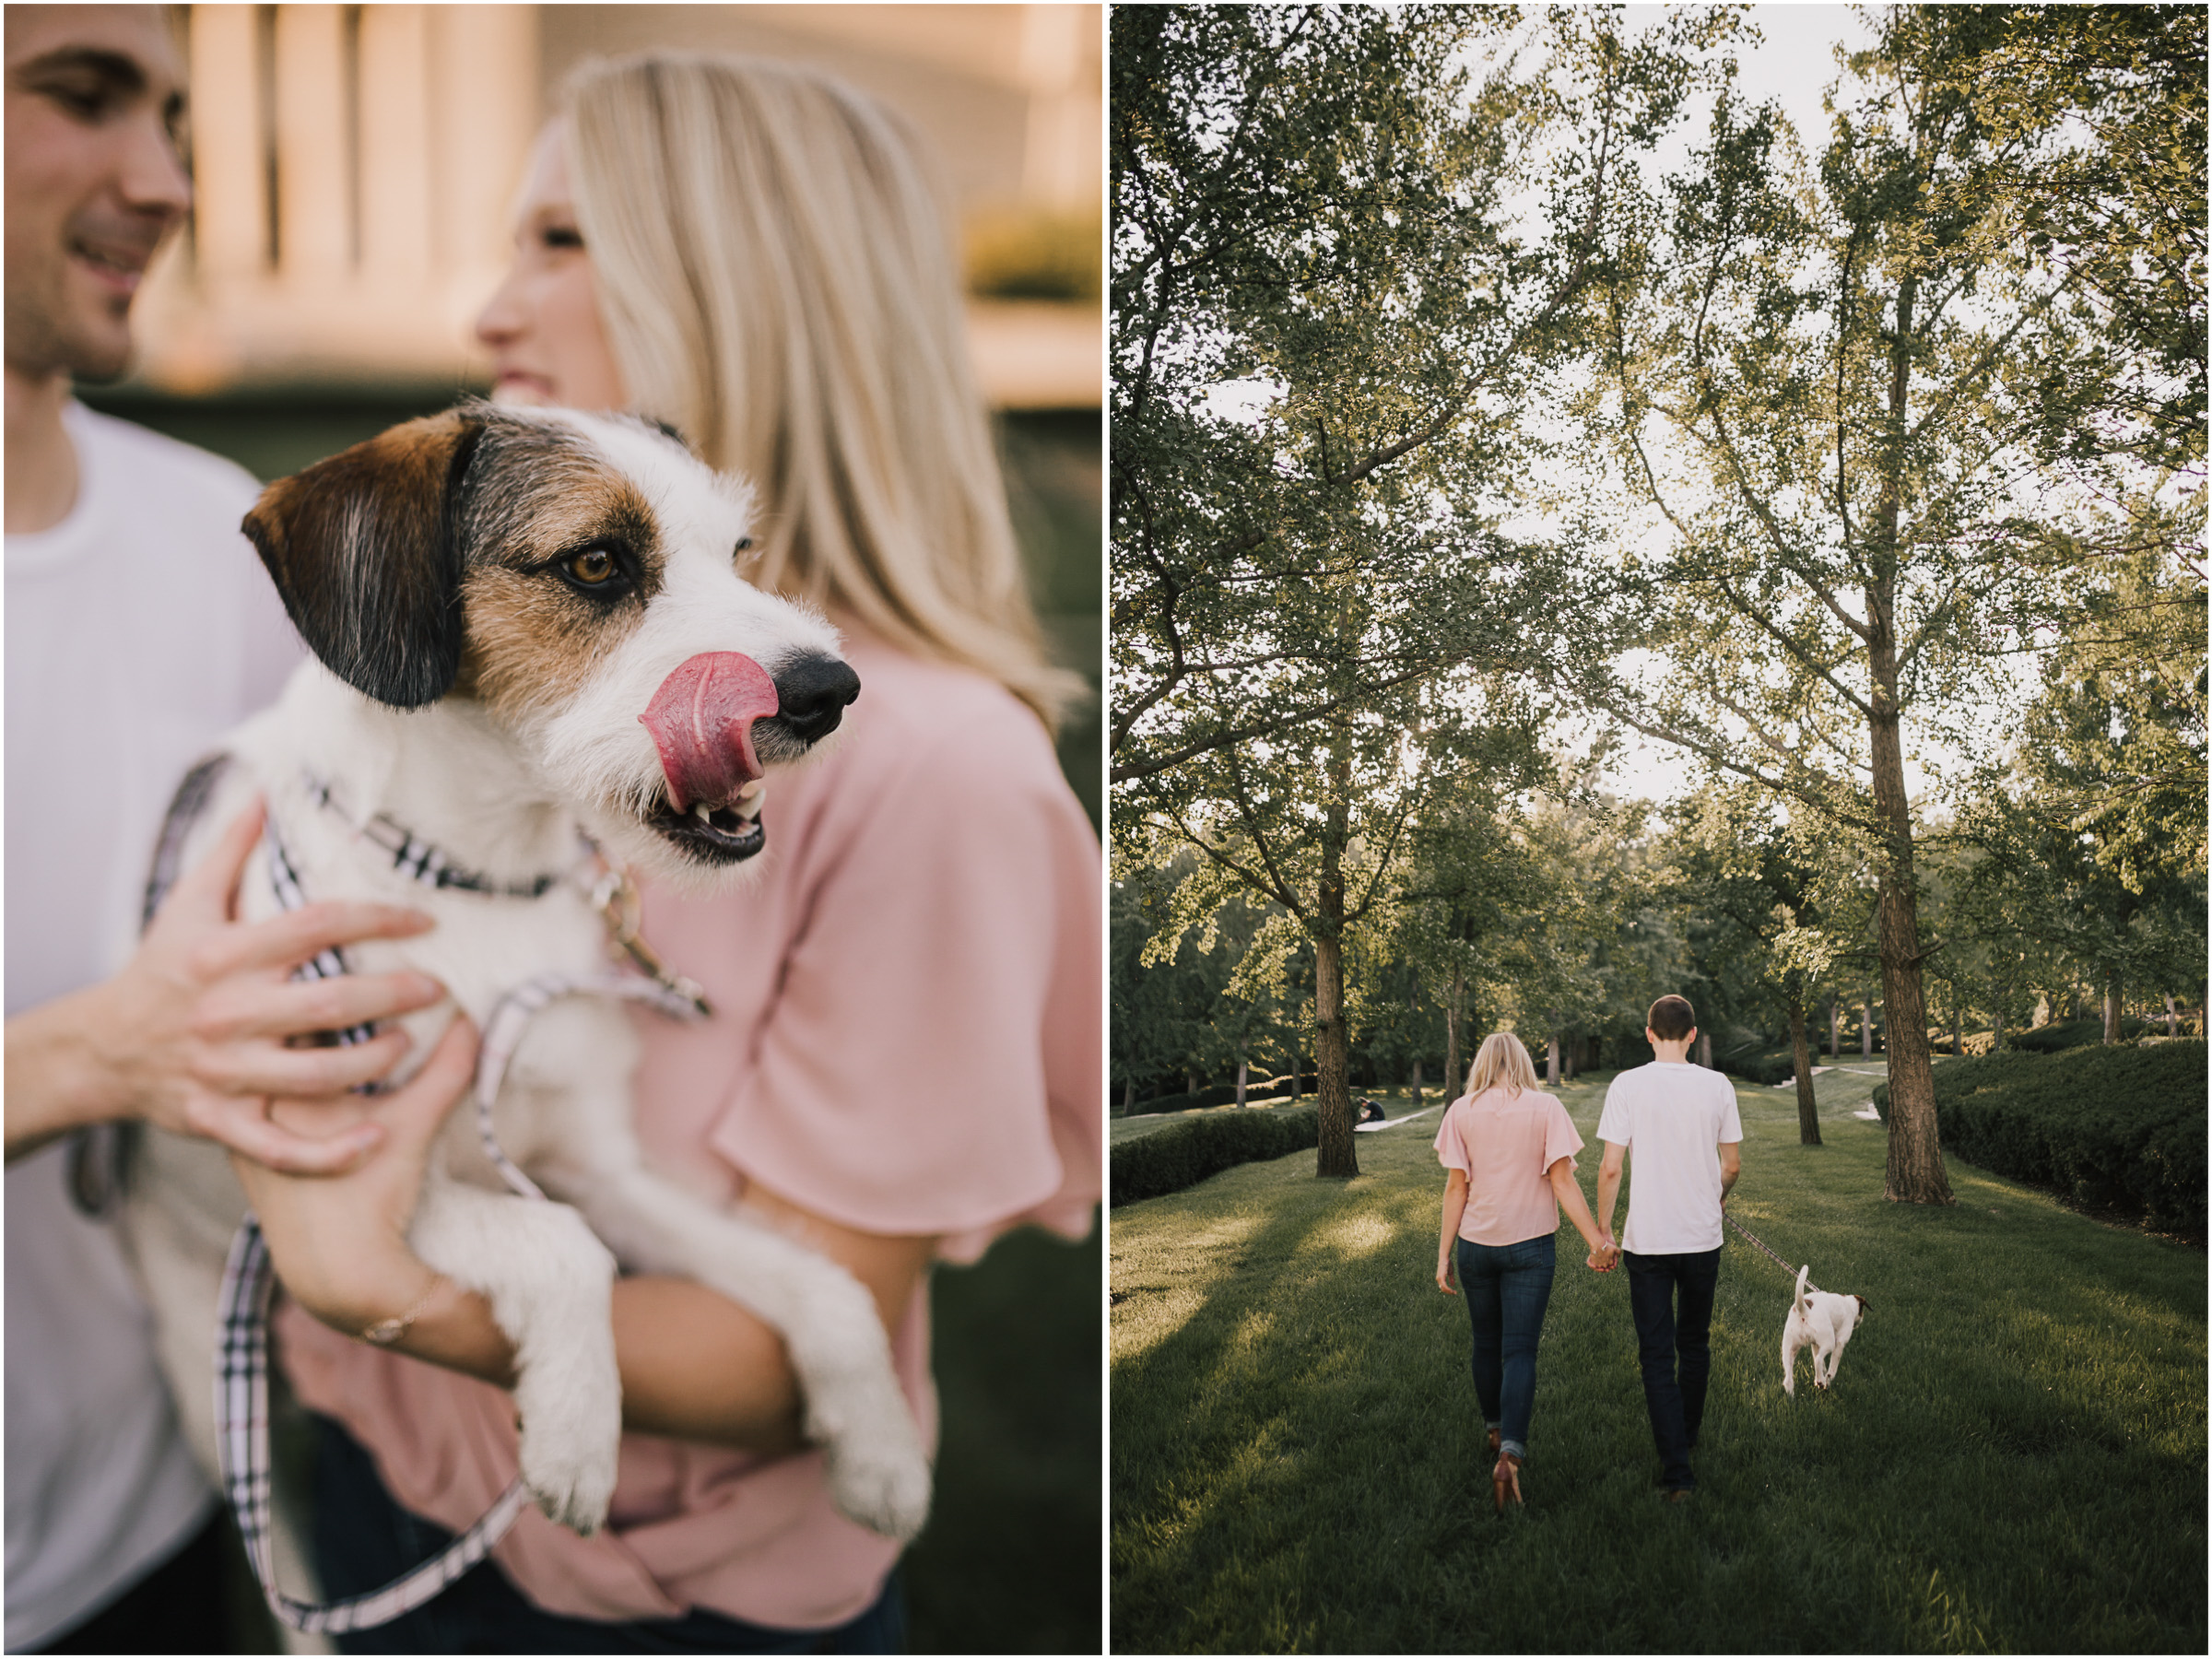 alyssa barletter photography nelson atkins art museum classic summer engagement session with dog-6.jpg